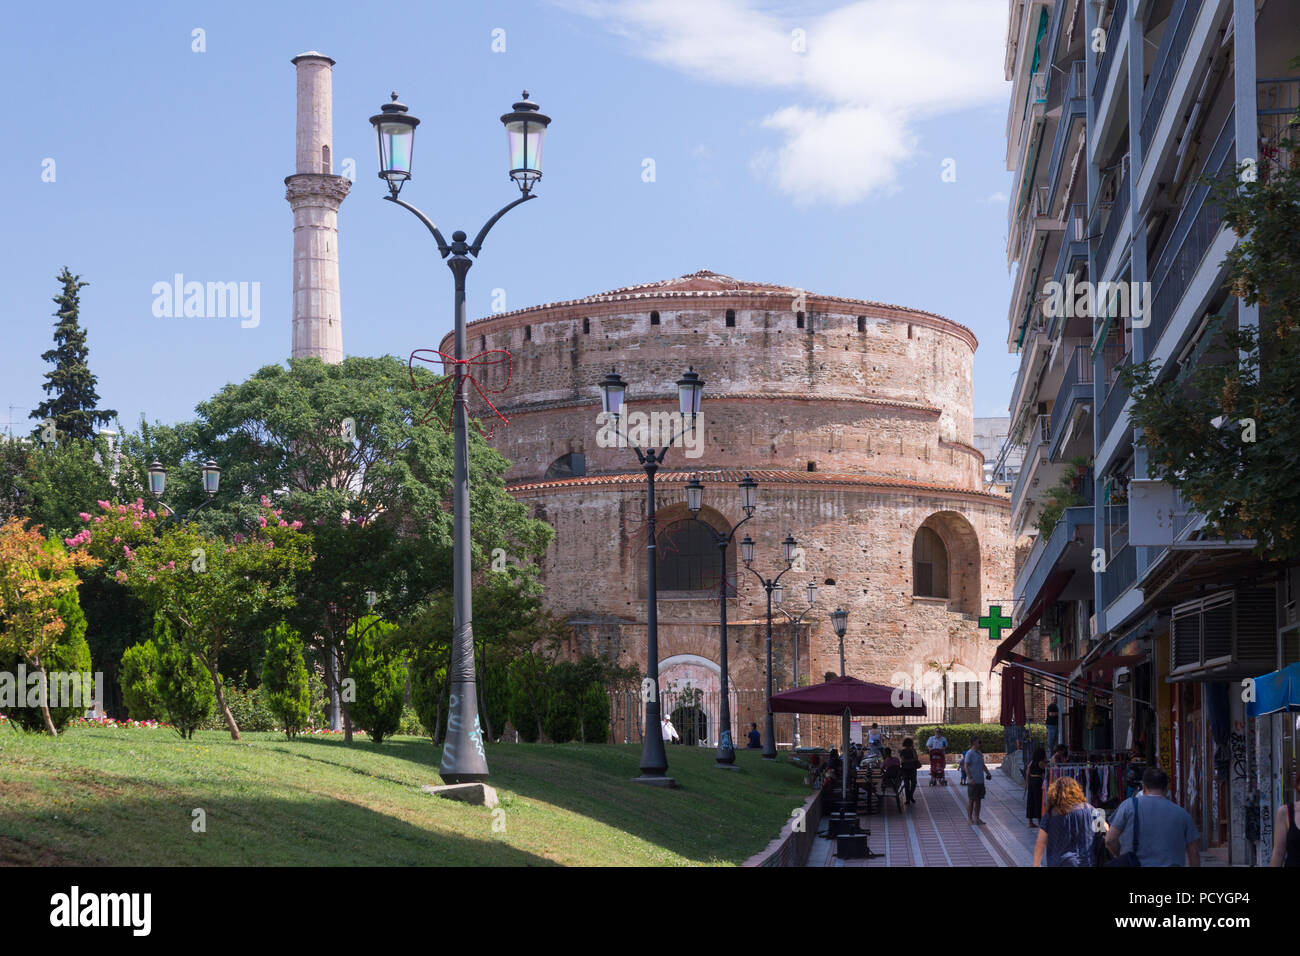 Built in 306 A.D. by the romans, the Rotunda of Galerius is one of the oldest religious sites of the city of Thessaloniki and a popular tourist site - Stock Image